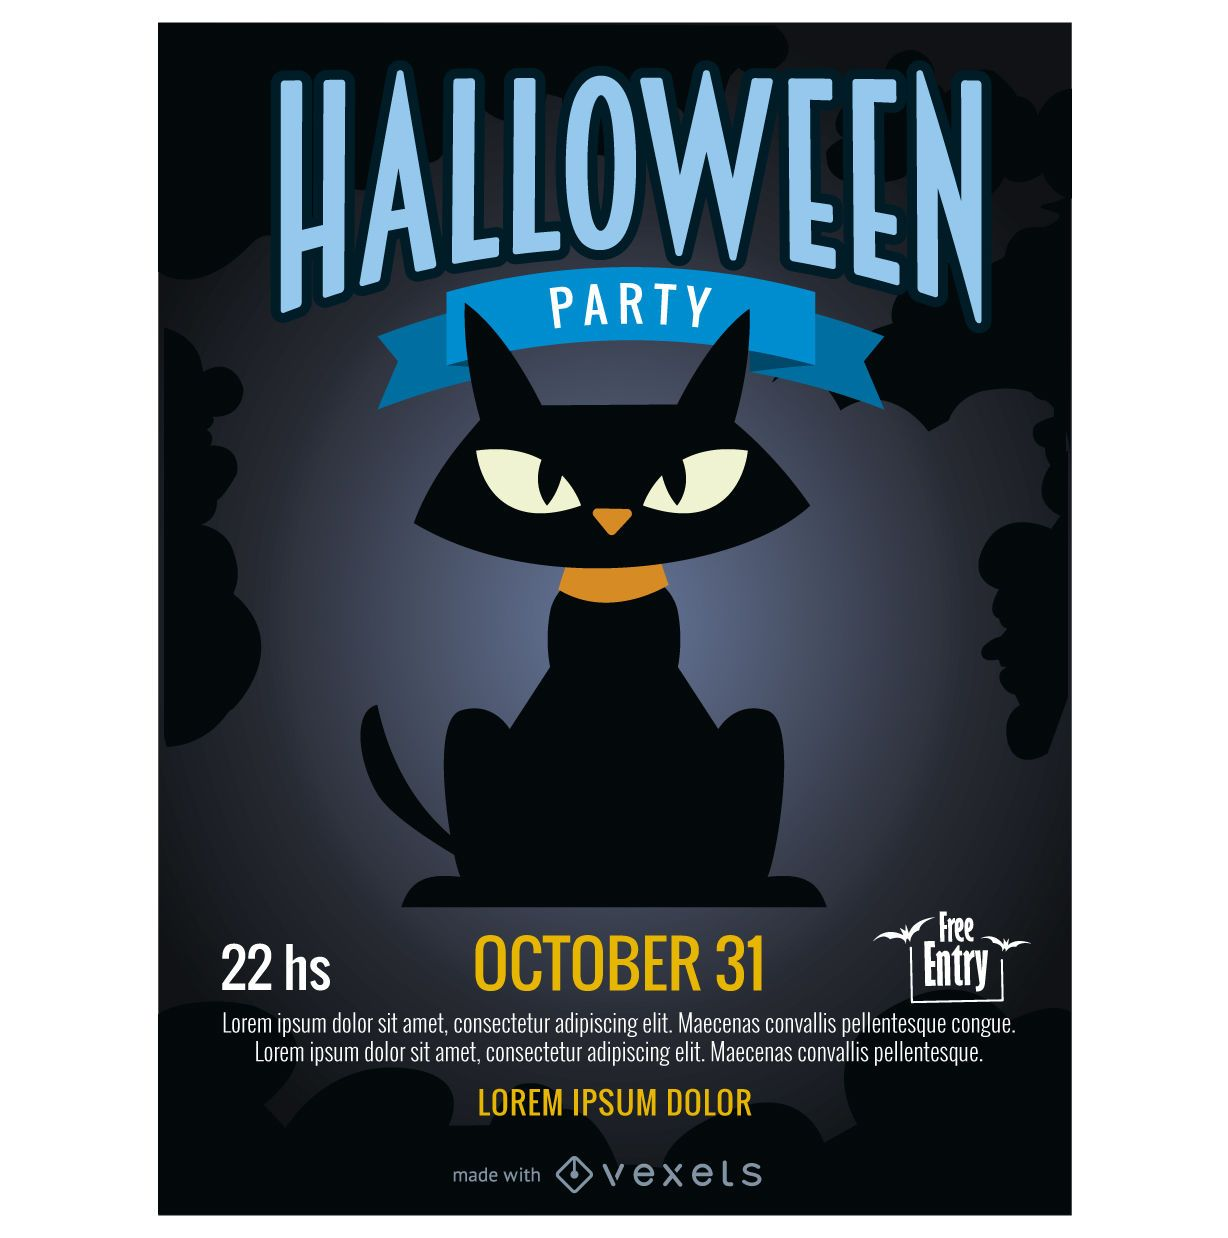 halloween party poster maker editable design. Black Bedroom Furniture Sets. Home Design Ideas